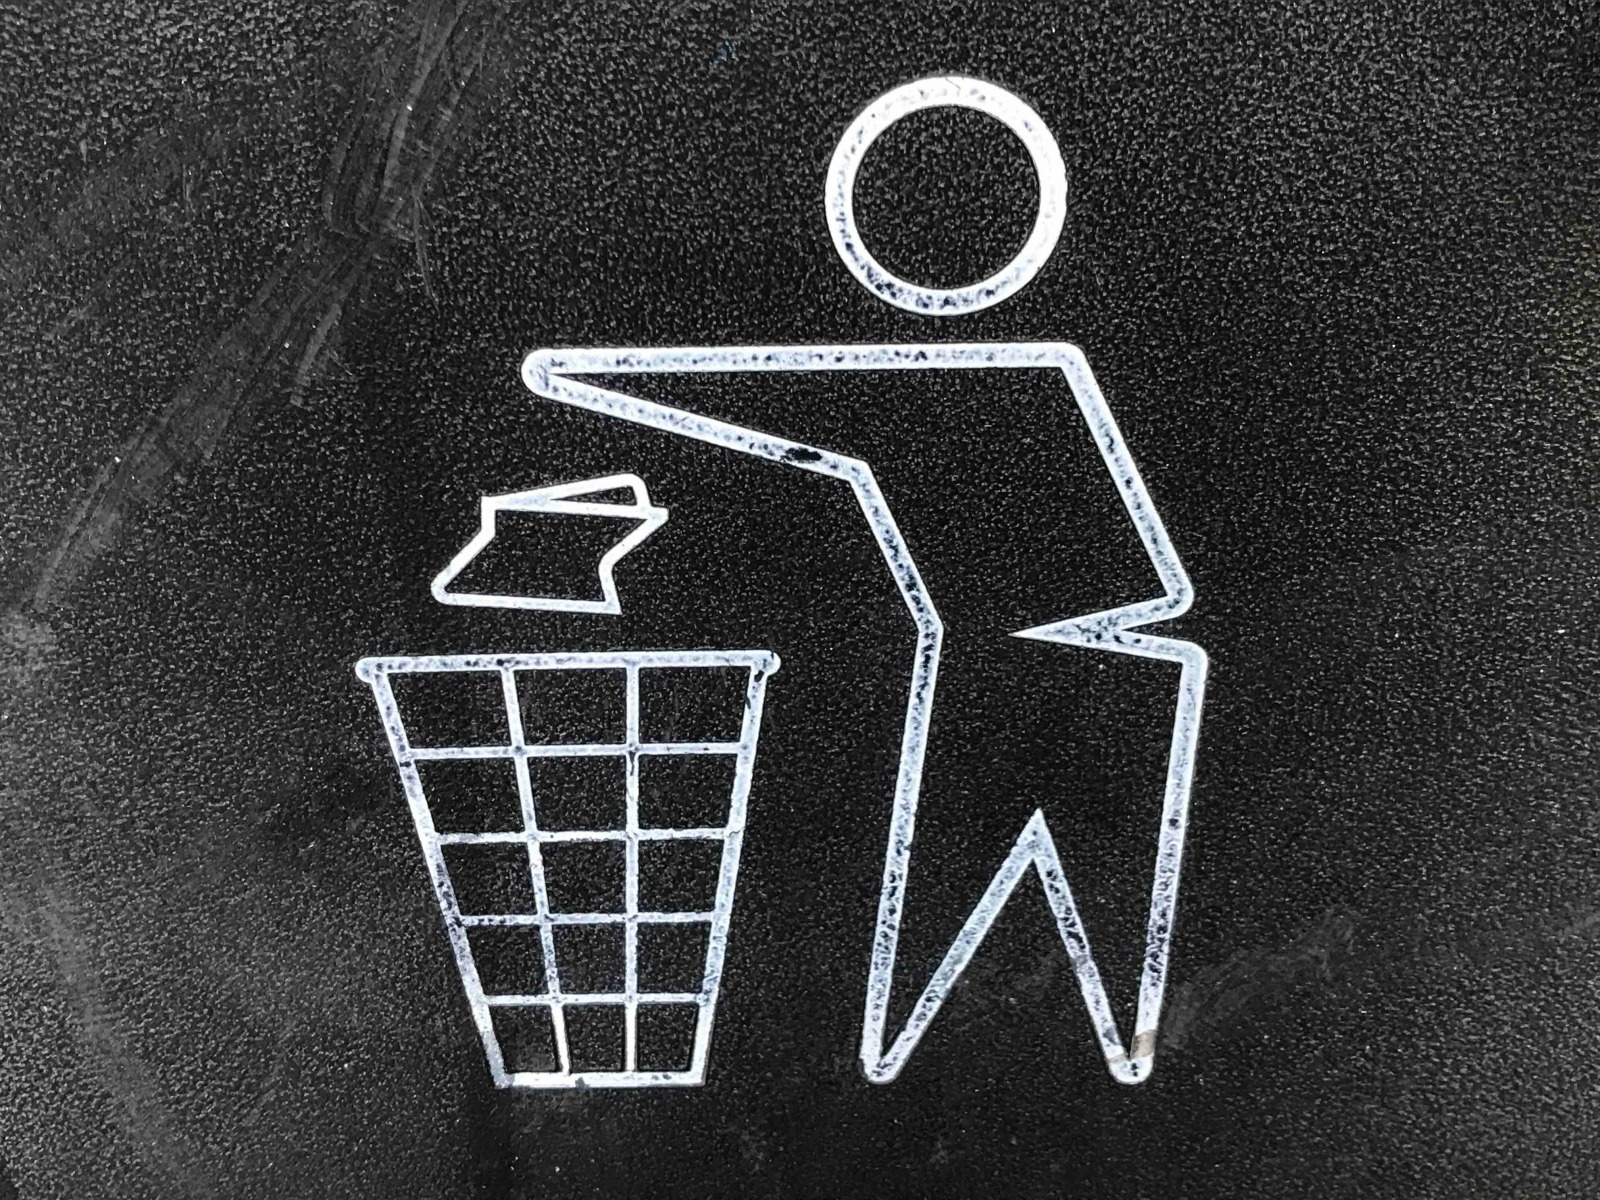 A silhouette cartoon figure throwing trash away.